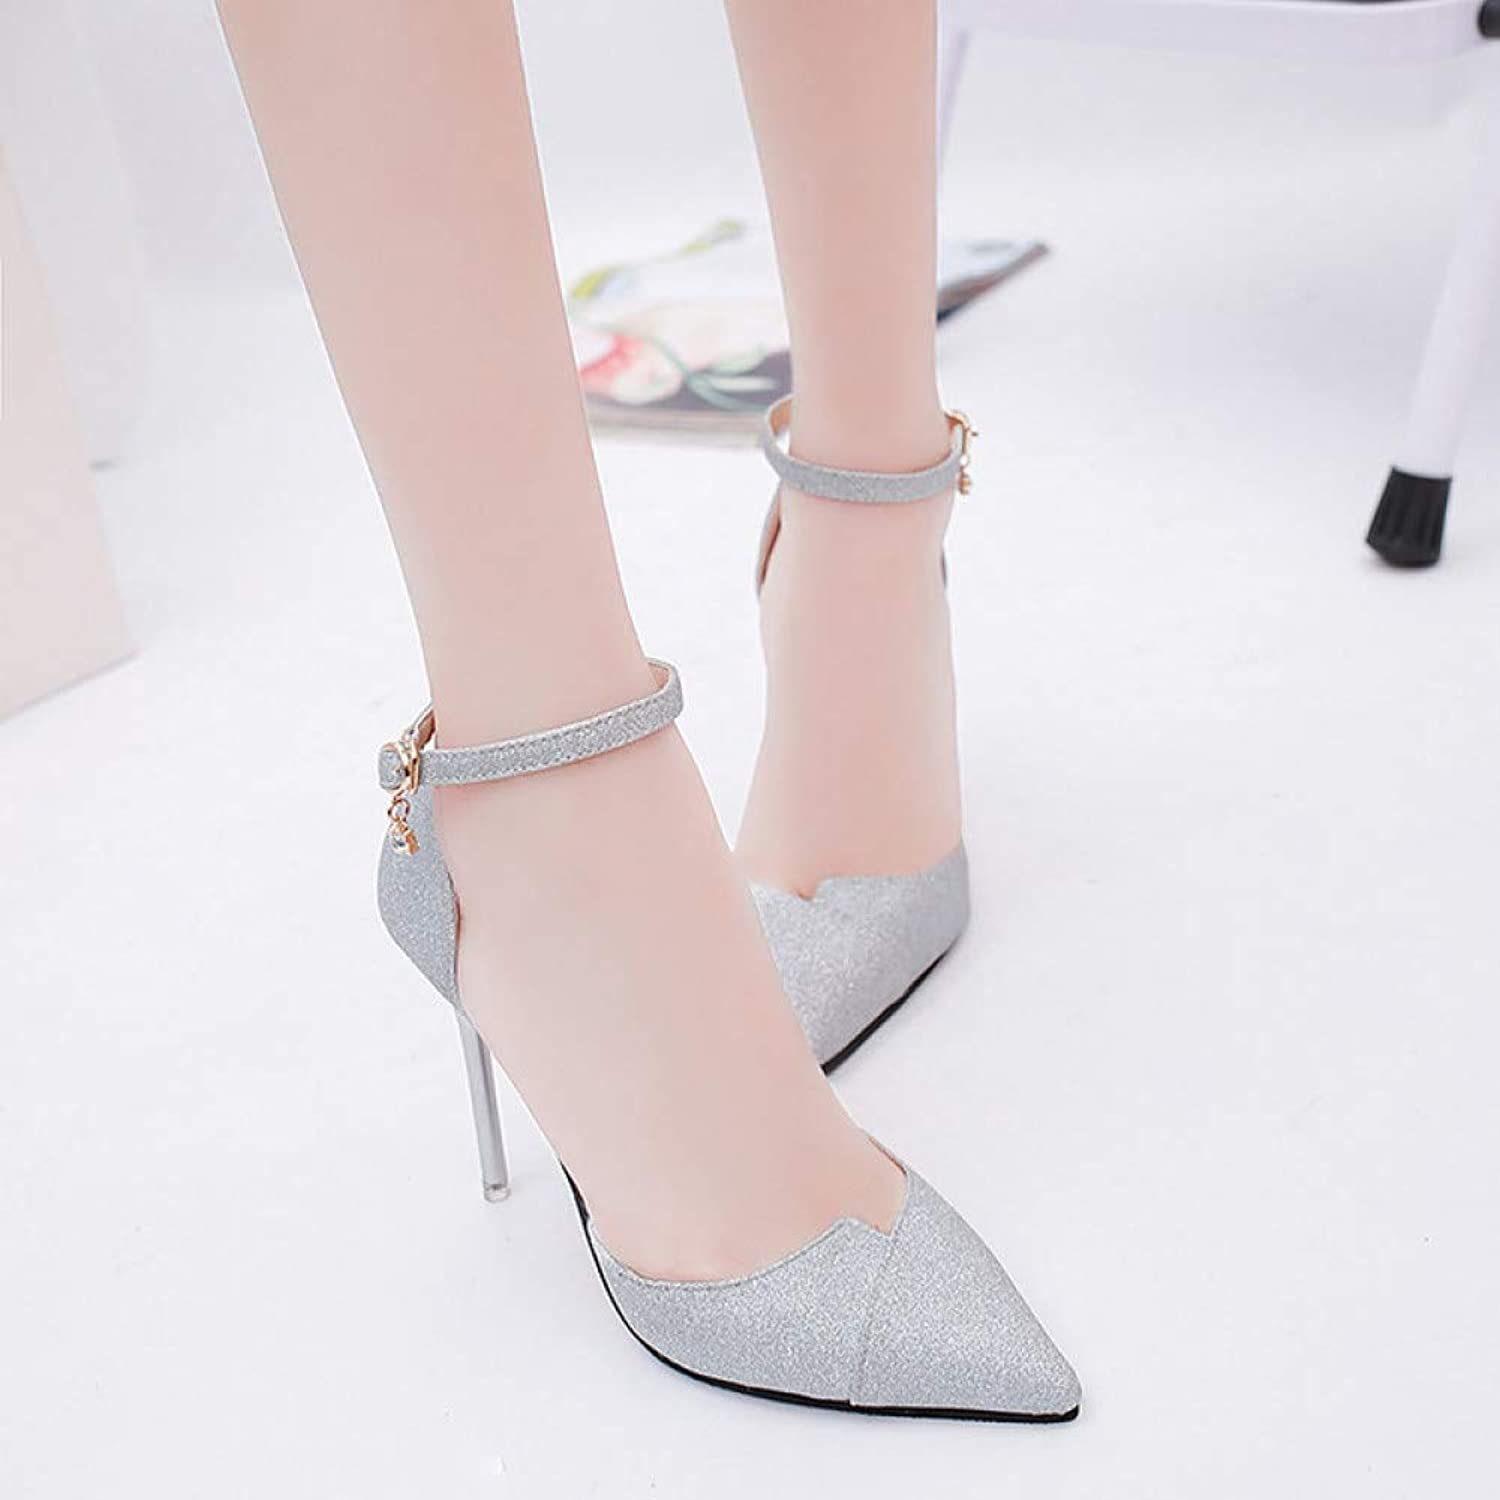 UKJSNHH igh Heels Summer High-Heeled shoes Female Fashion Hollow with Sandals Korean Pointed of The Thin Breathable Crystal Women Pumps